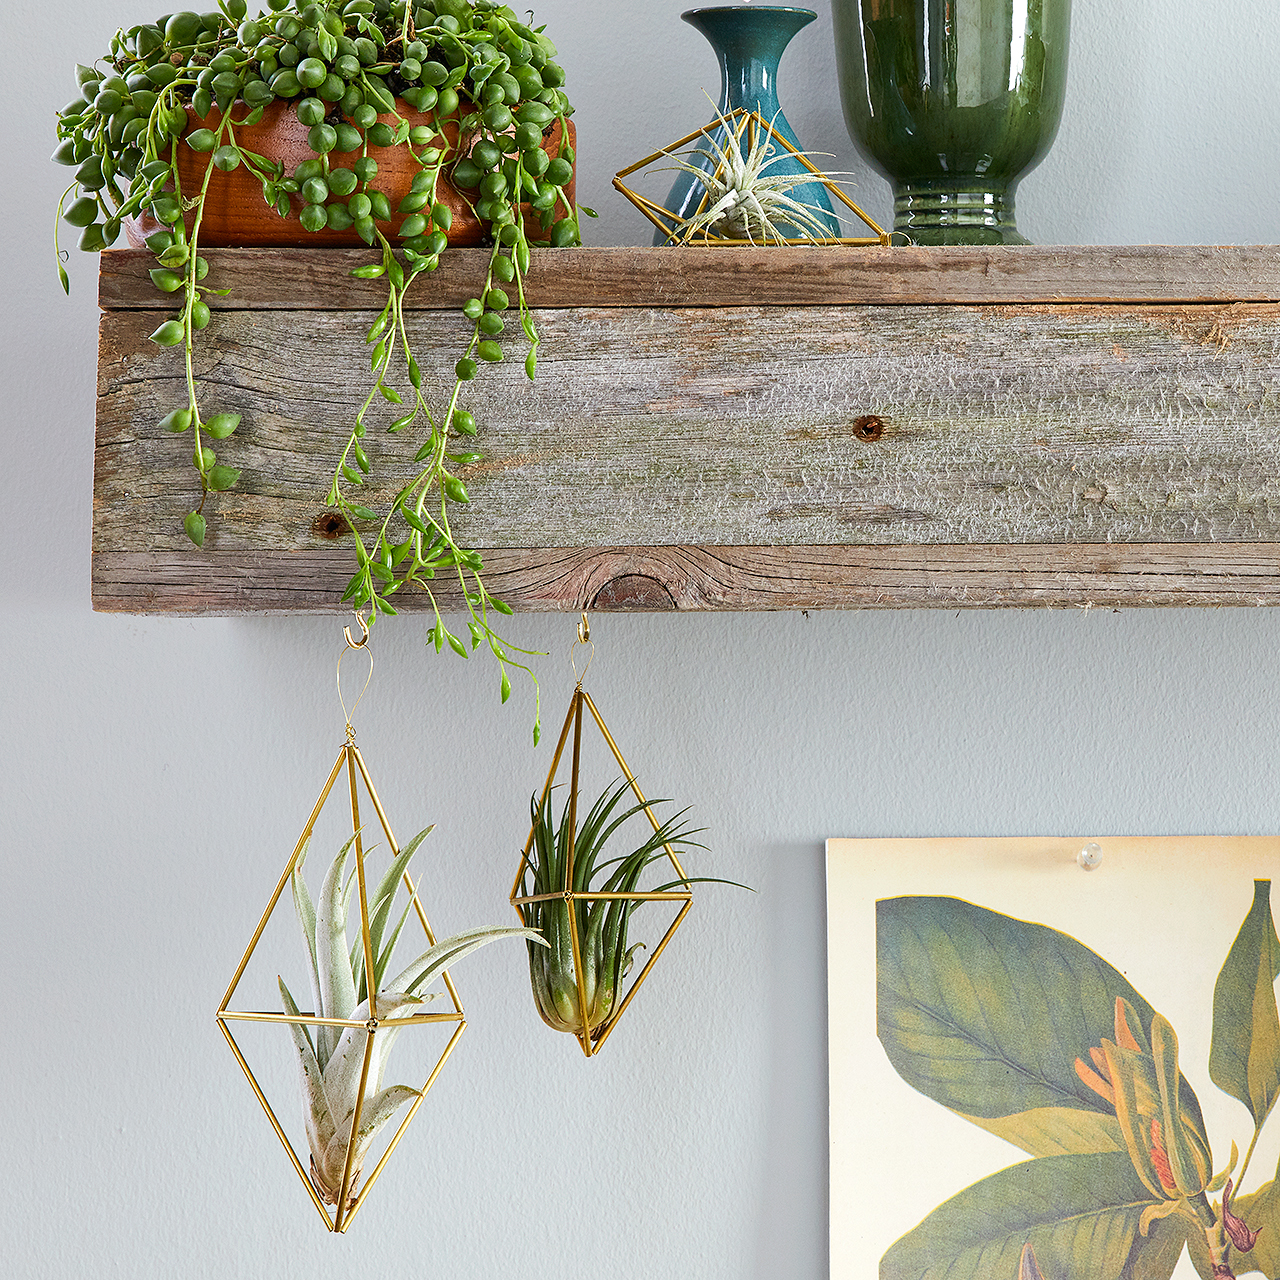 rustic shelf and hanging brass air plant holders